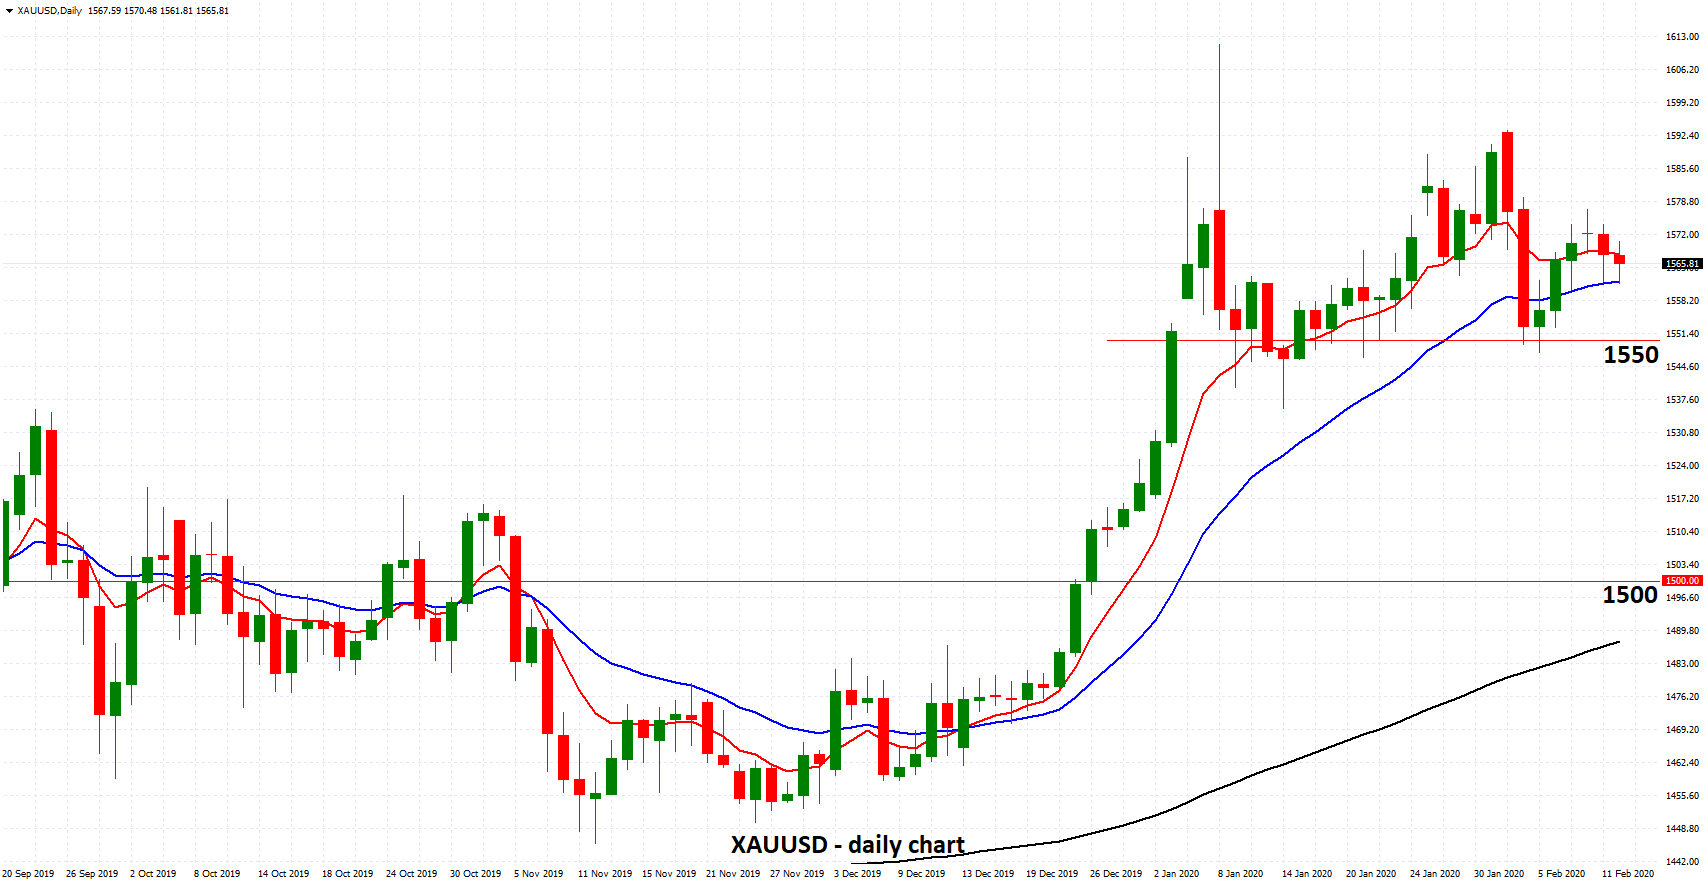 XAUUSD - Remains Steady Above 1550 as Virus Fears Remain